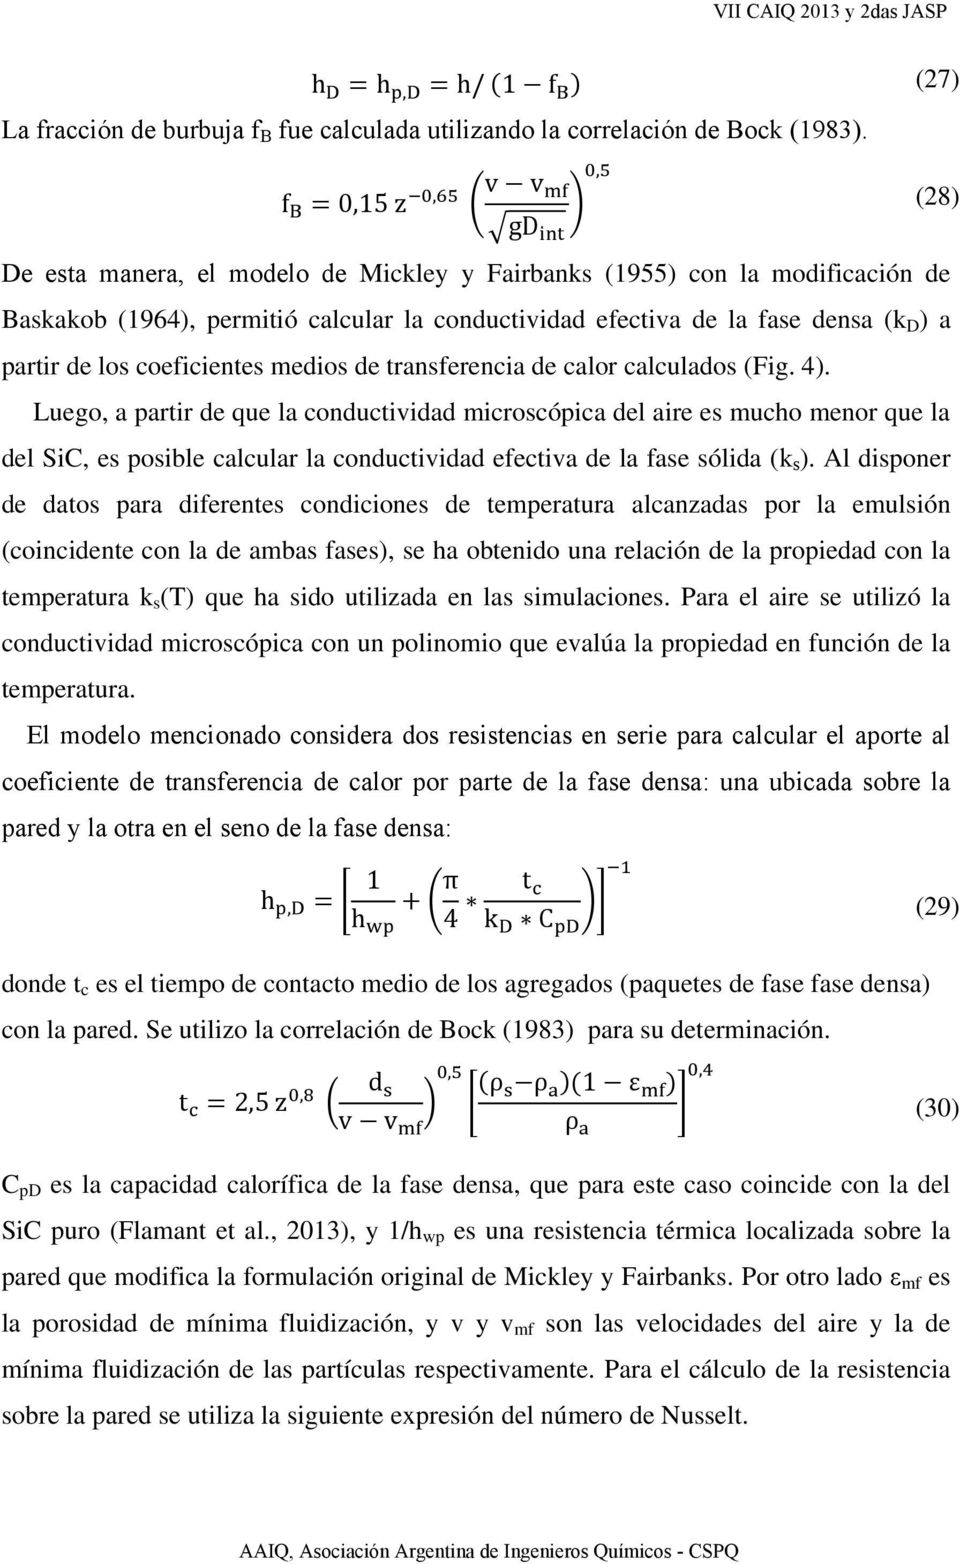 coeficientes medios de transferencia de calor calculados (Fig. 4).